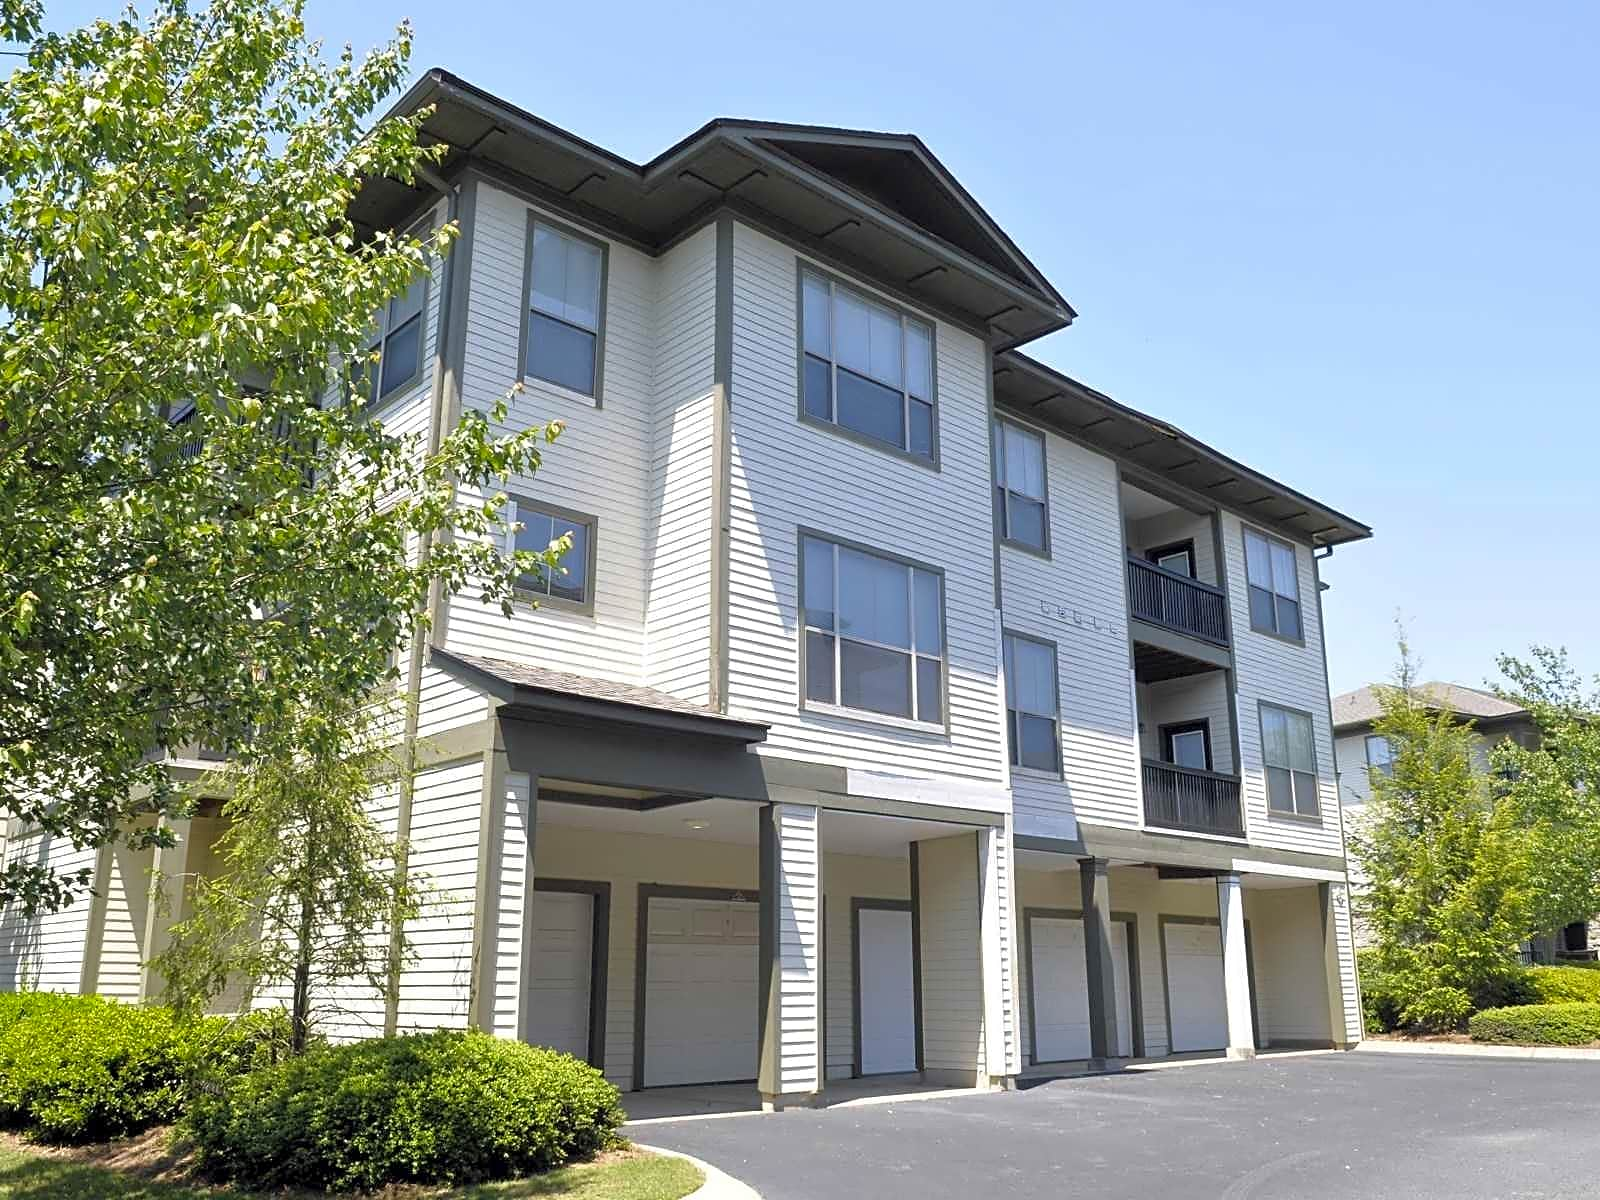 Estates at Ridenour for rent in Kennesaw